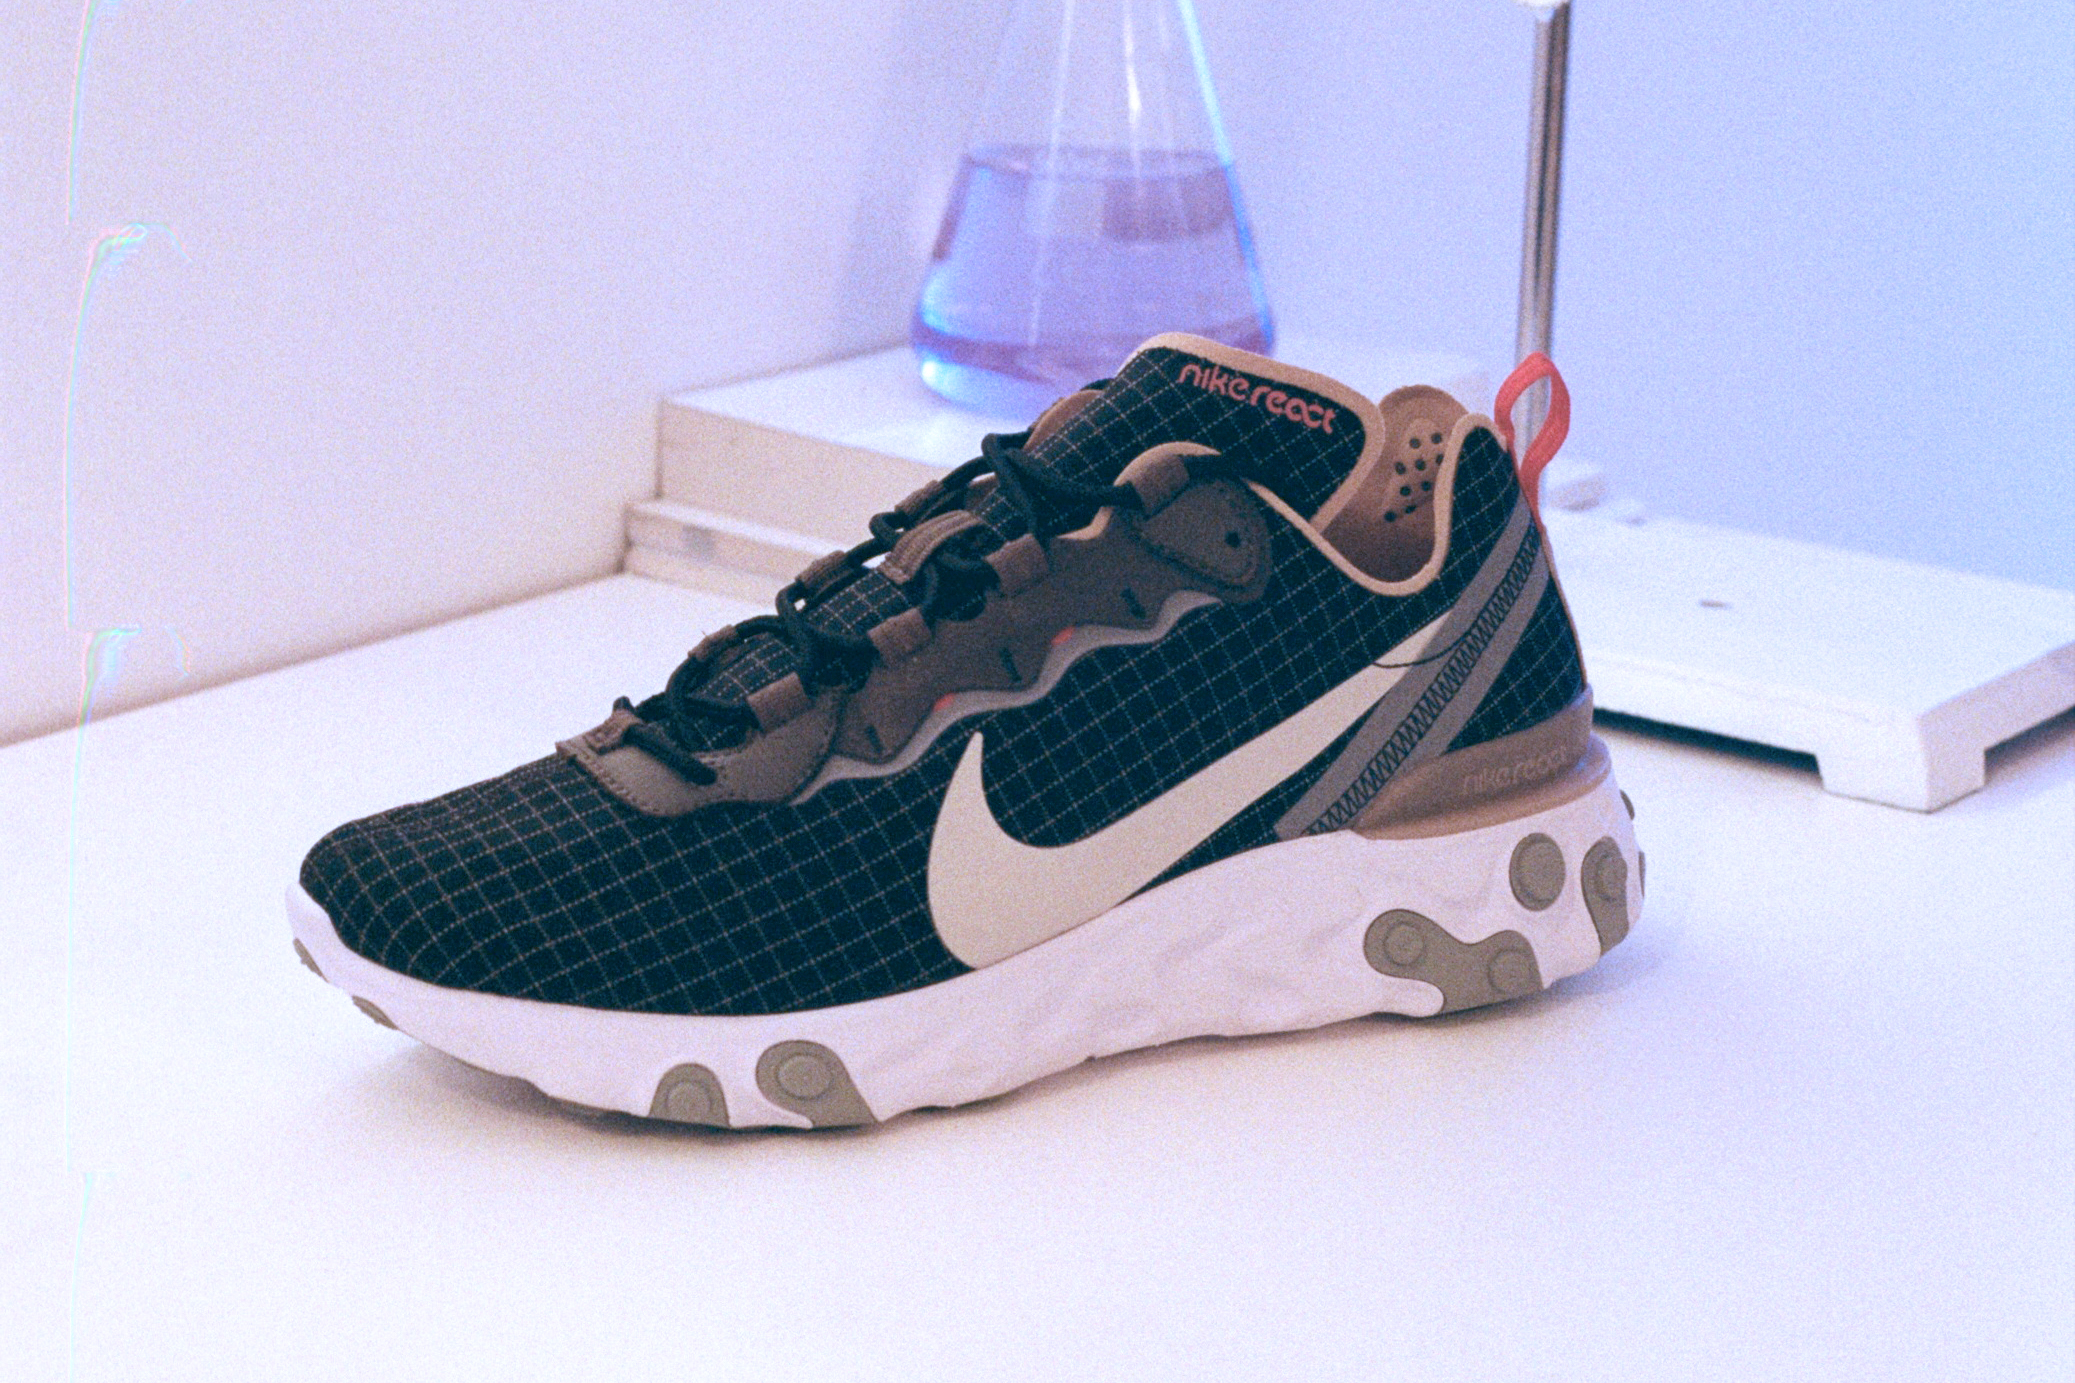 detailed look decb0 51a54 Following the hugely successful introduction of the Nike Element 87 to the  sneaker industry (undoubtedly one of the best shoes to come out this year),  ...